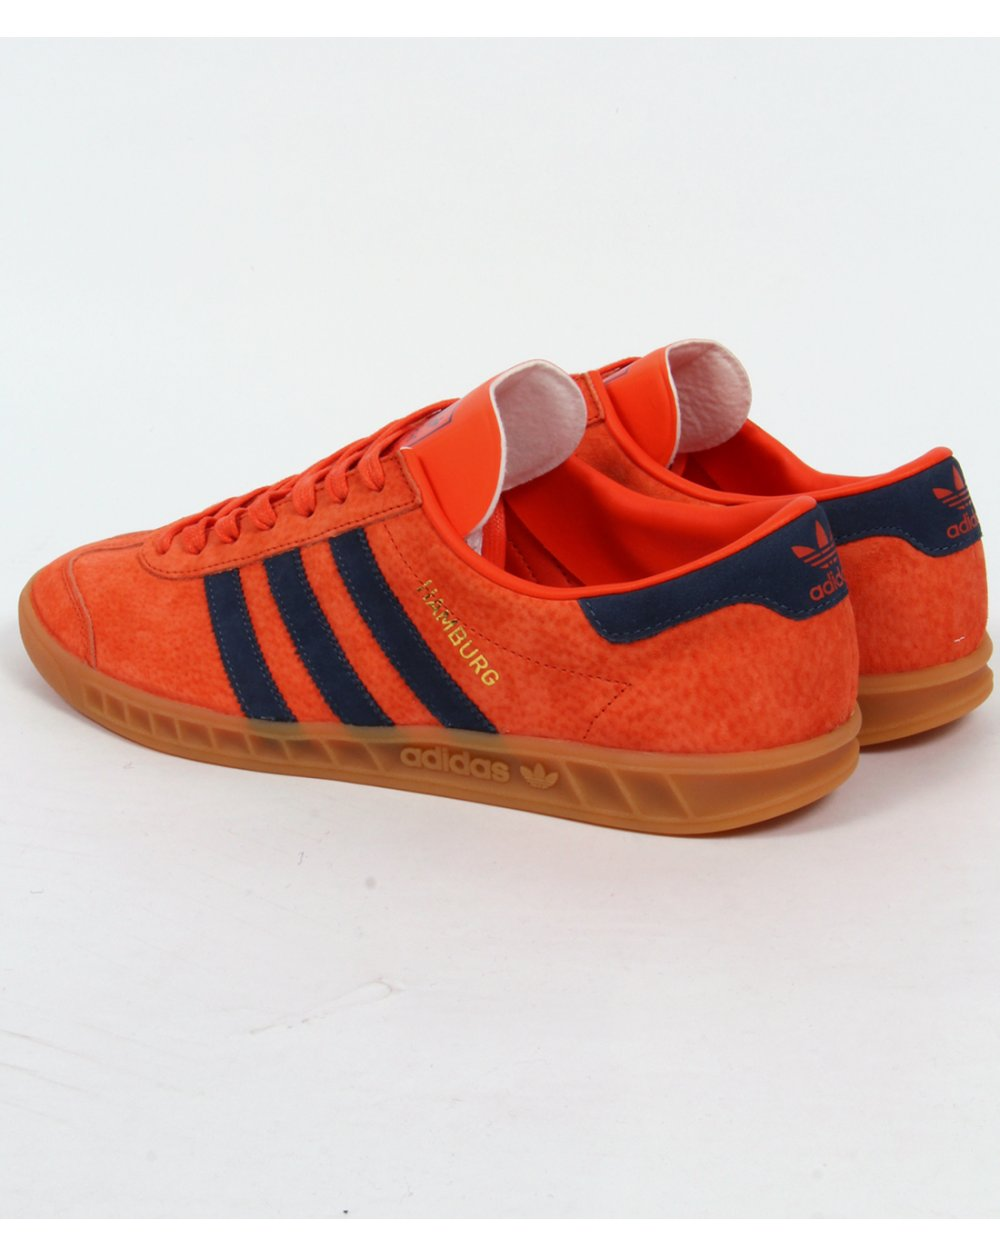 adidas hamburg shoes uk